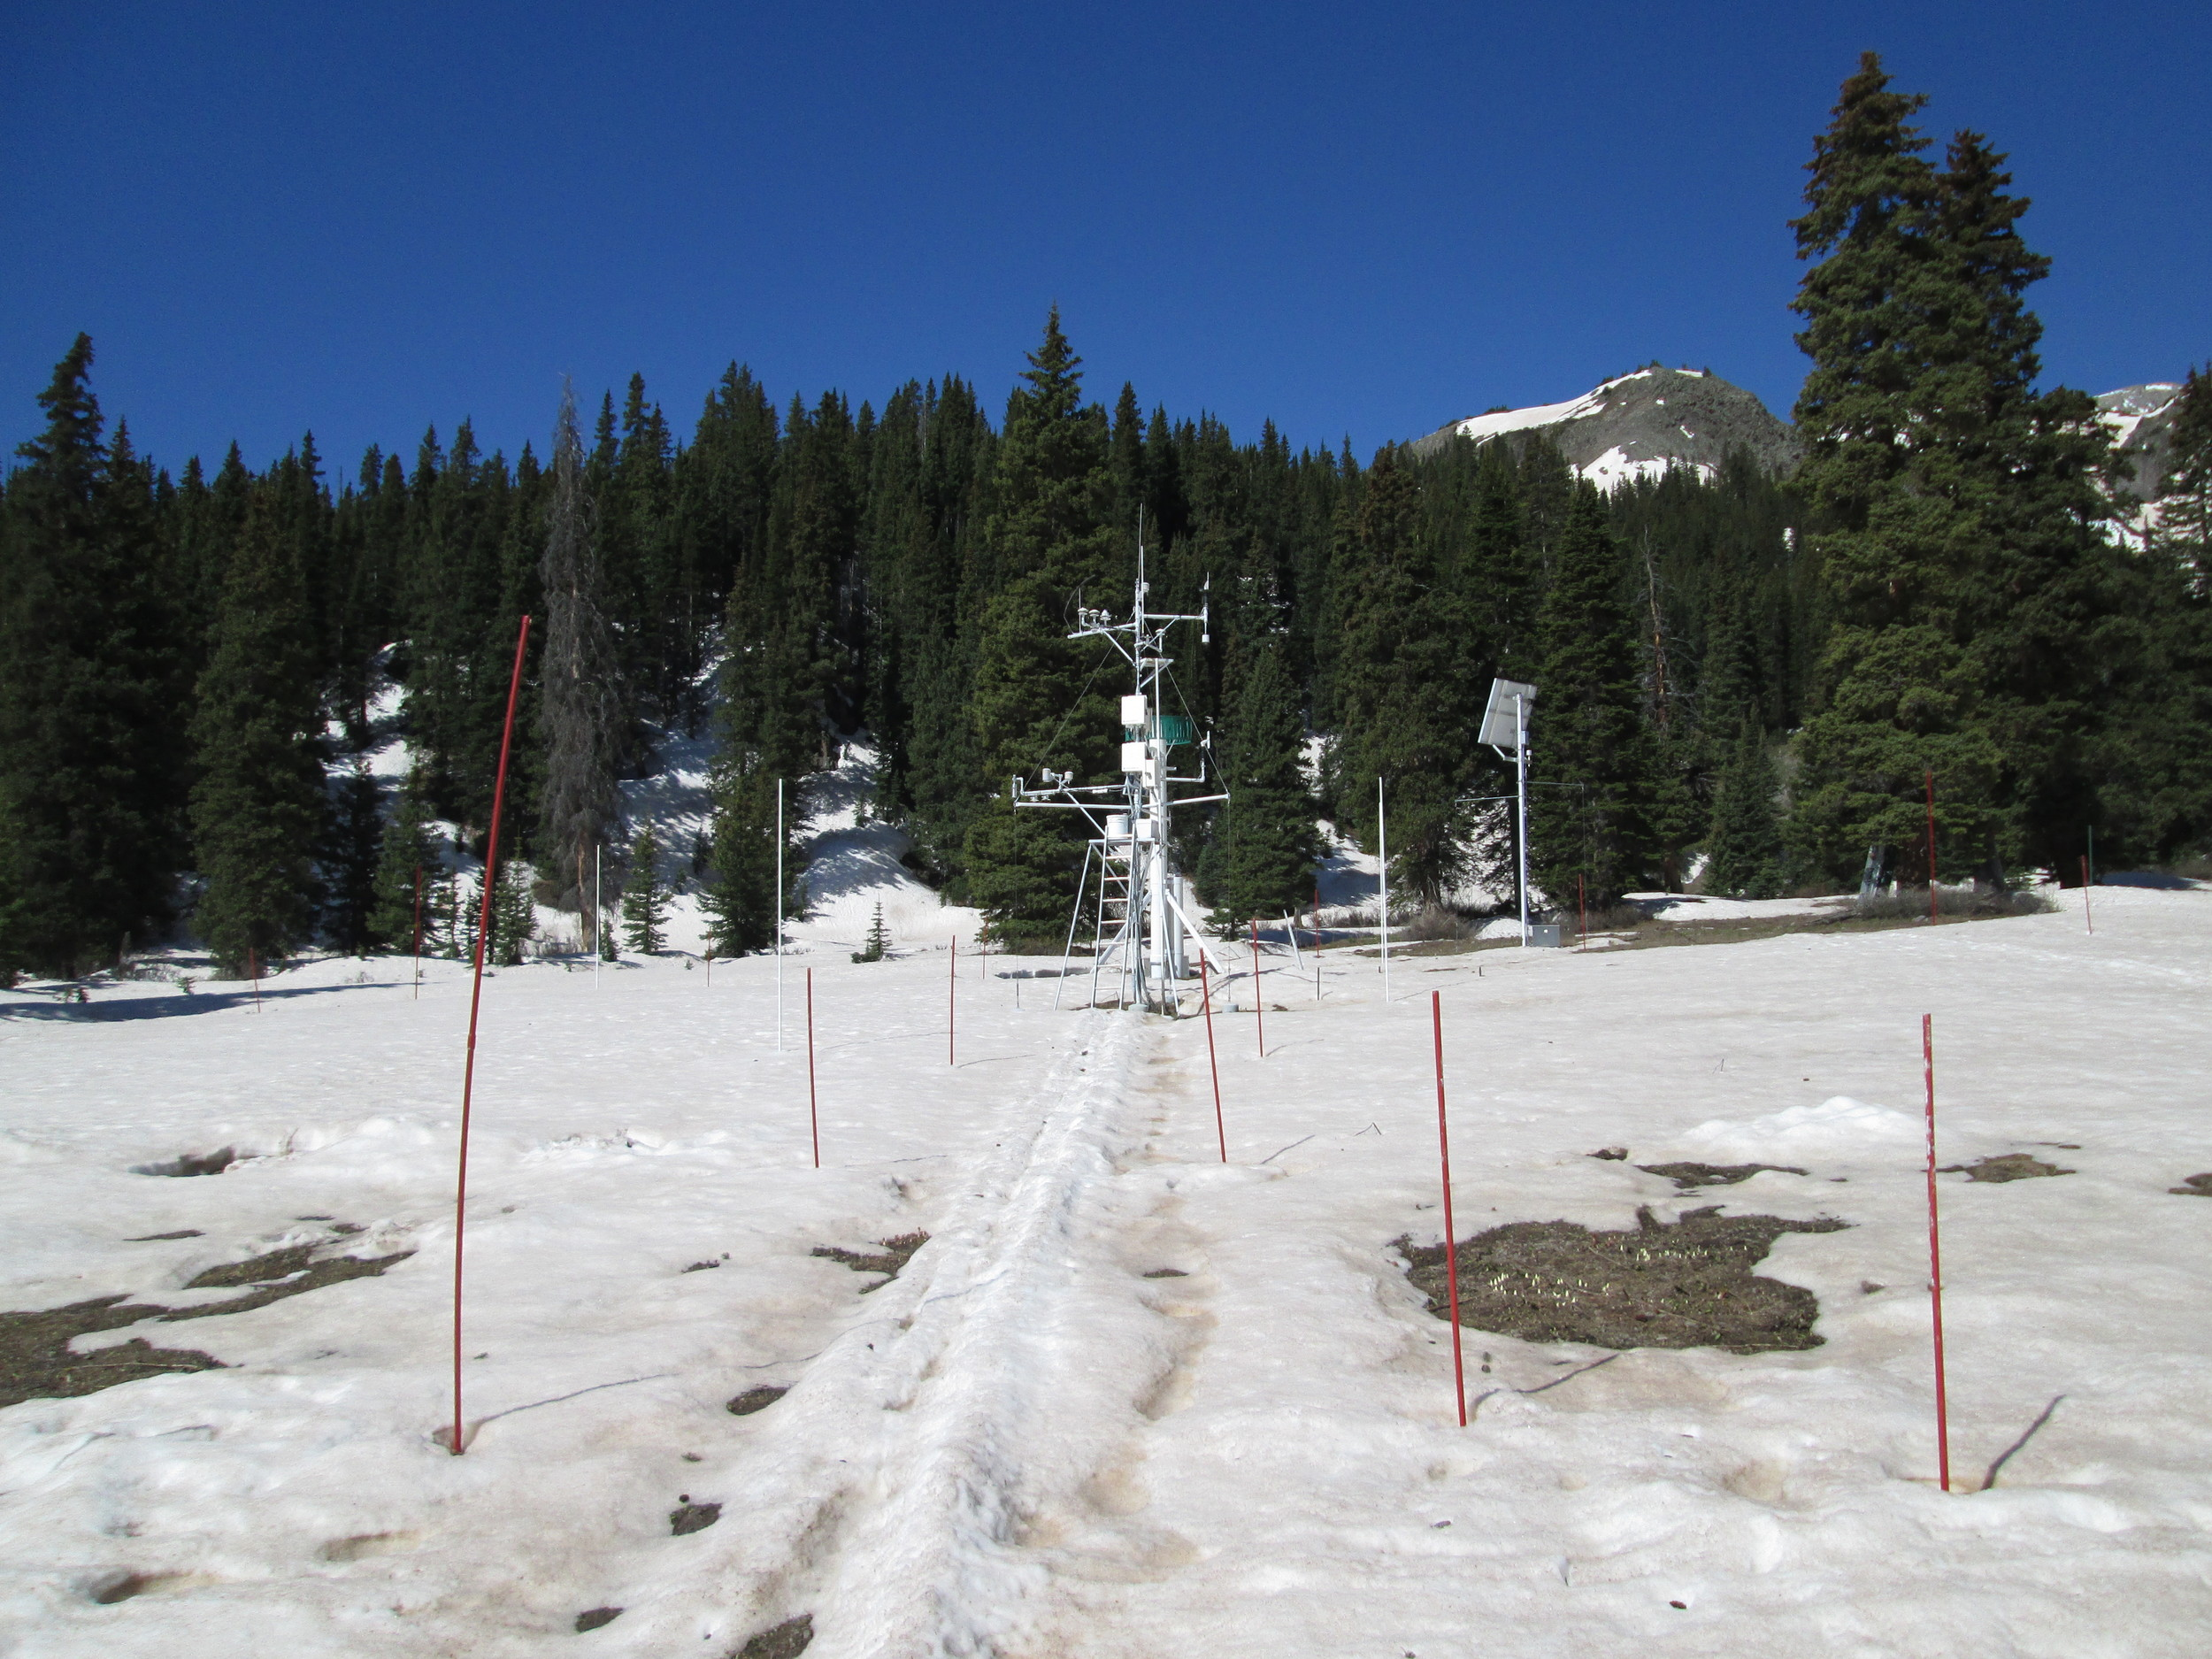 """Upon return from the CODOS circuit, the Swamp Angel Study Plot (SASP, at 11,060') at Senator Beck Basin was on the cusp of """"snow all gone"""" (SAG), with all dust layers D2-D8 merged at the snowpack surface. Dust conditions, dust color, and reductions in snow albedo here were very similar to those observed at Grand Mesa, Independence Pass, and our Front Range CODOS sites. (The snow surface at our Rabbit Ears Pass CODOS site was, if anything, generally darker than this due to accumulated vegetation debris)."""